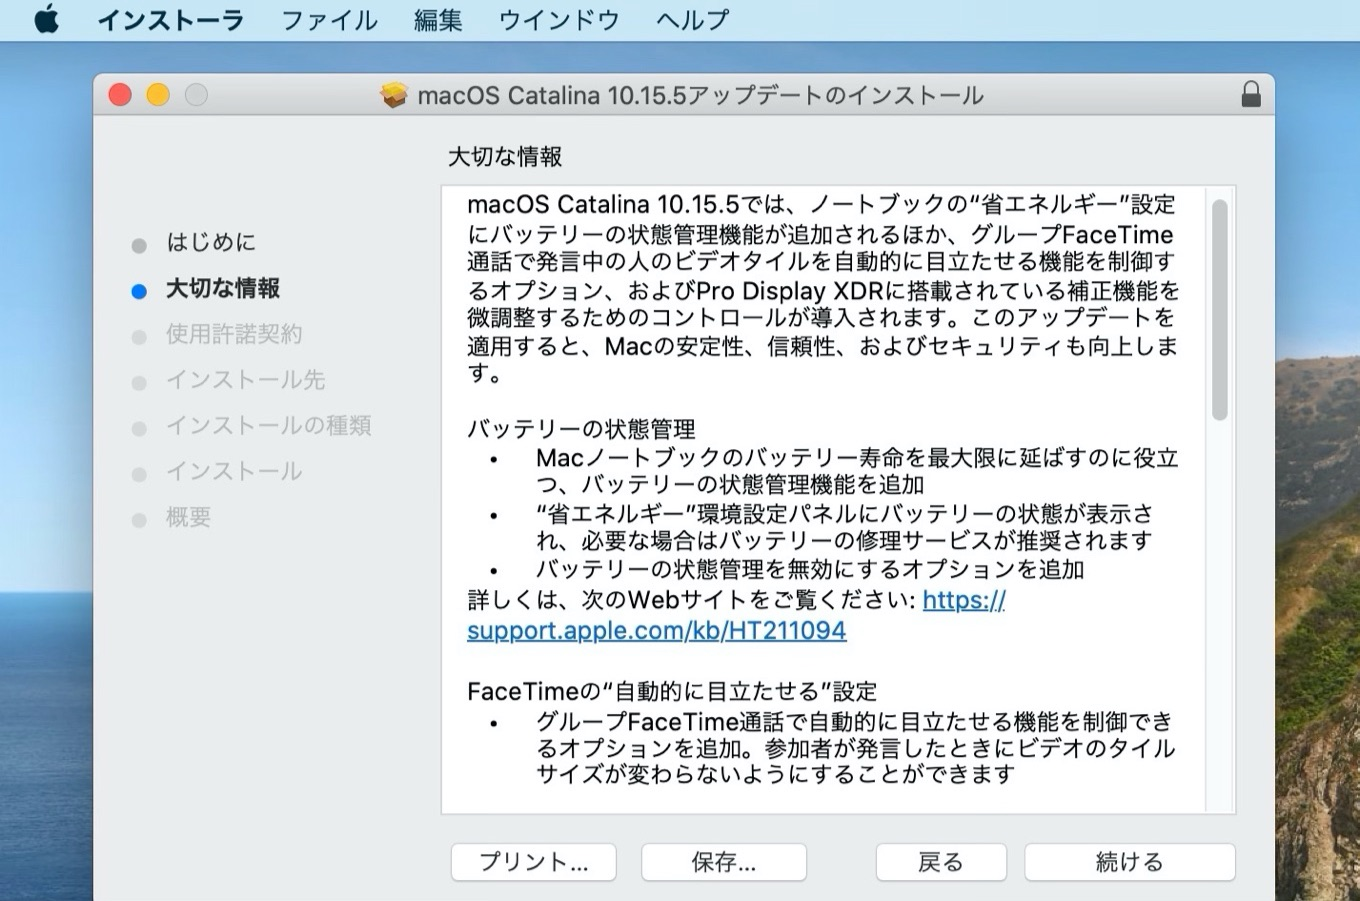 macOS Catalina 10.15.5 Update Comboのリリースノート